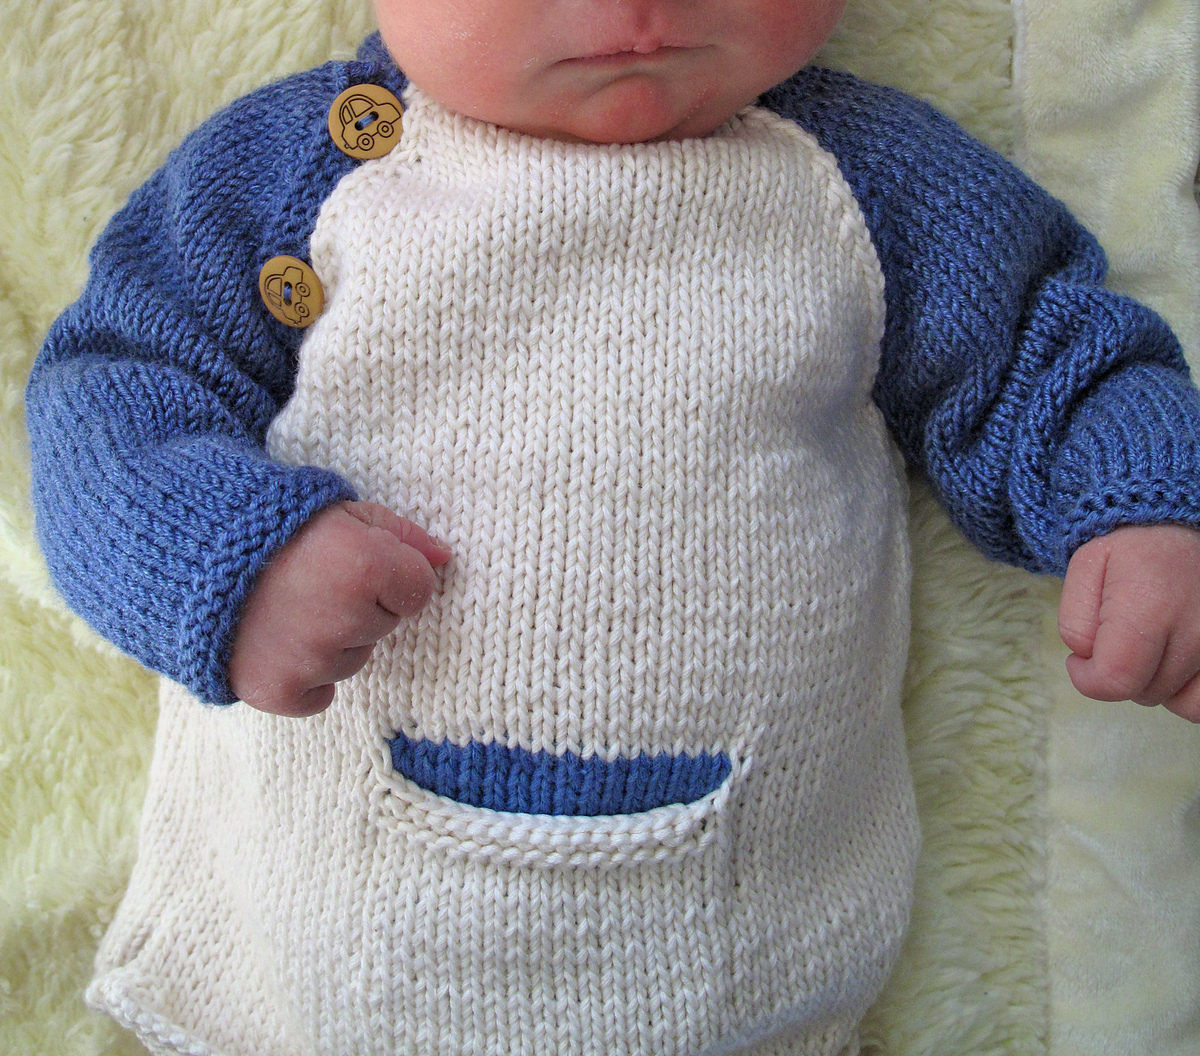 Baby Knitting Inspirational Easy Pullovers for Babies and Children Knitting Of Unique 46 Ideas Baby Knitting